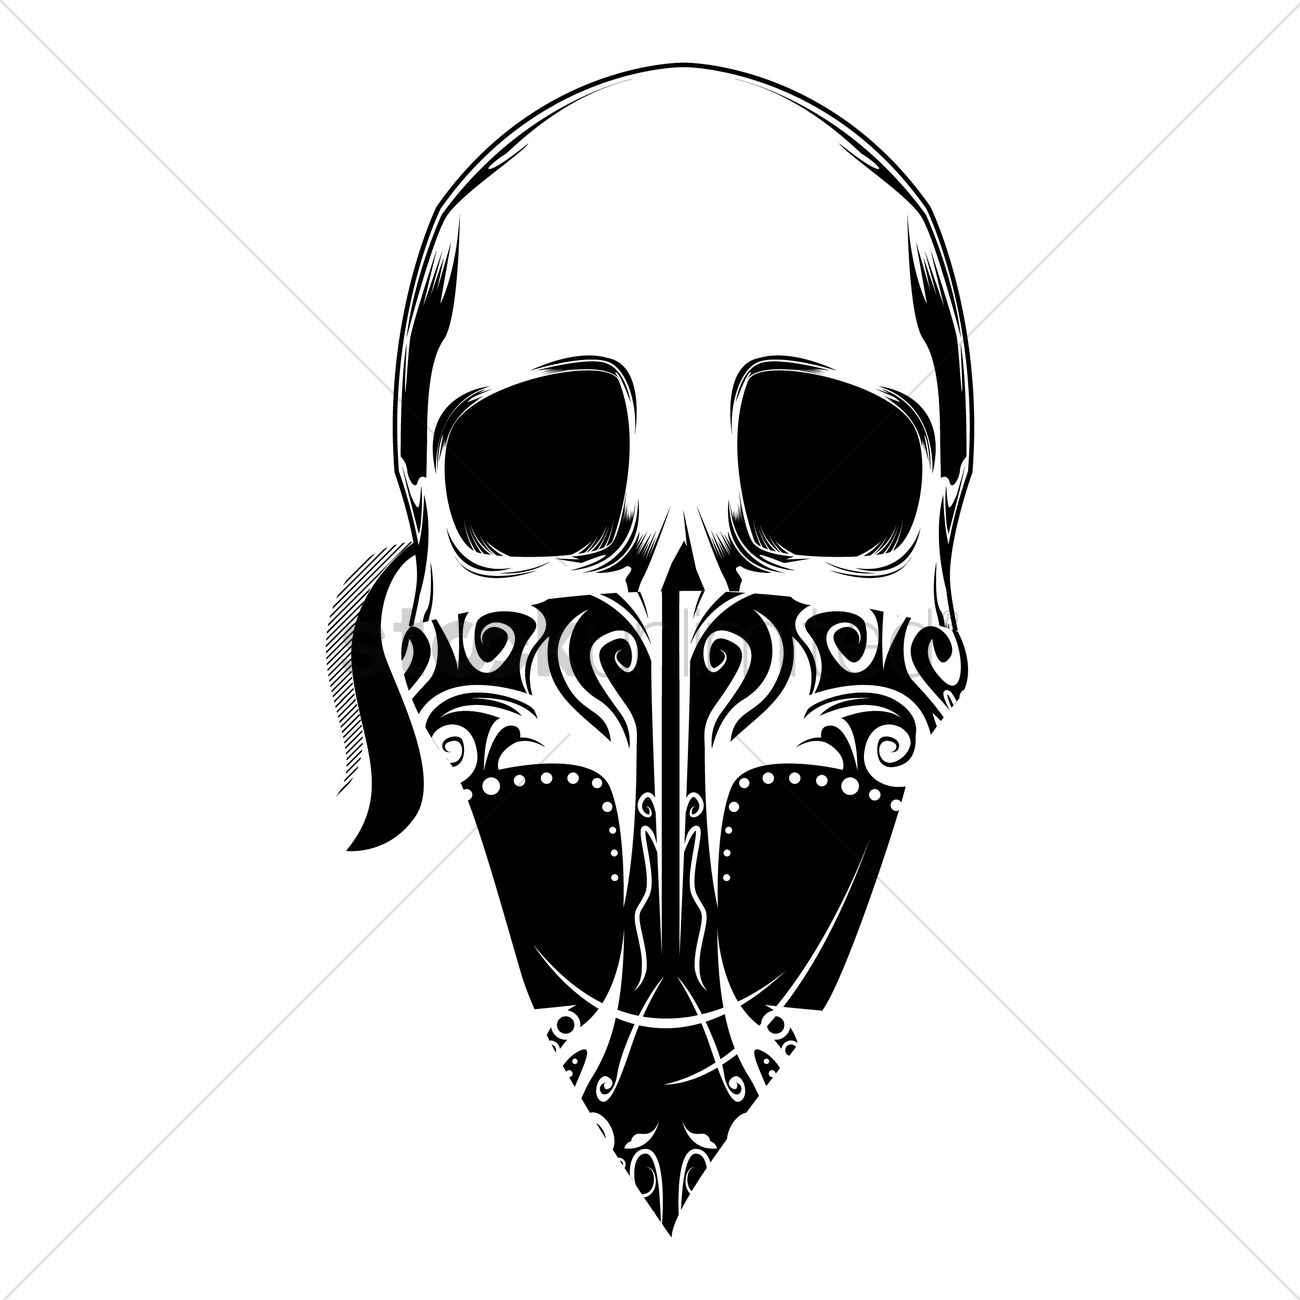 Outlaw skull Vector Image - 1403892 | StockUnlimited